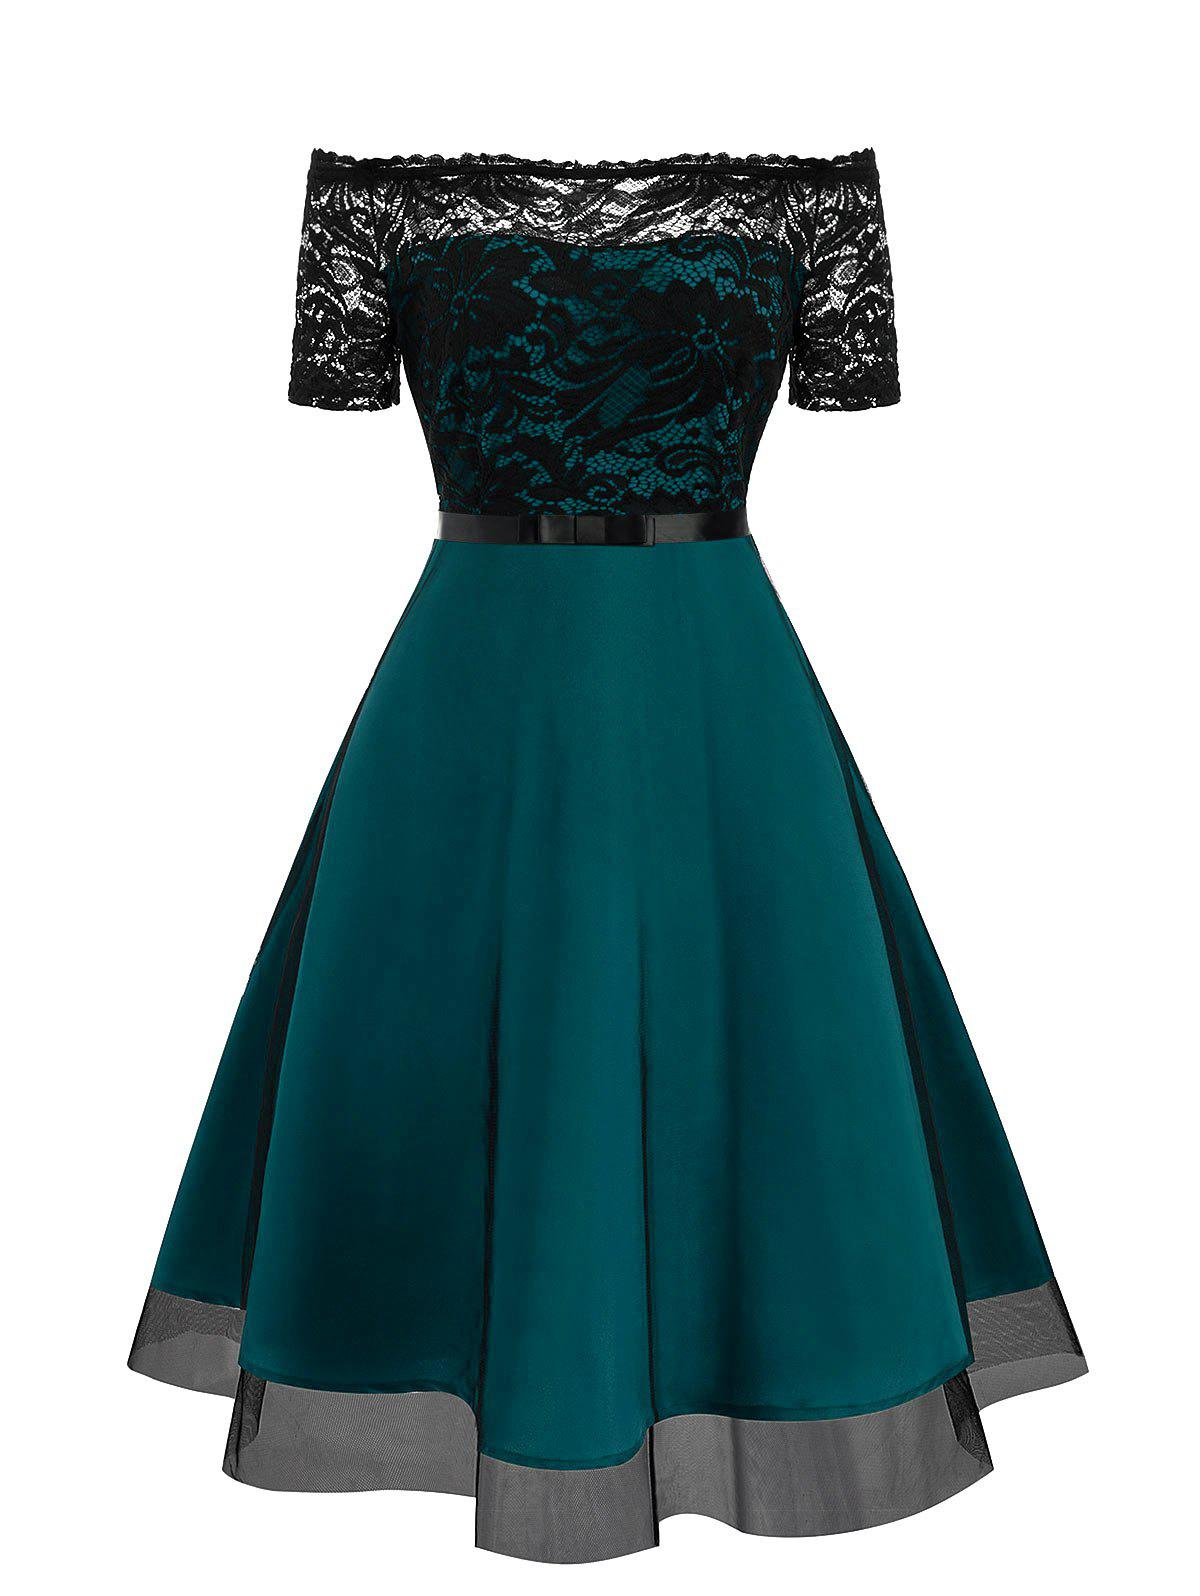 Lace Bodice Off The Shoulder Semi Formal Dress - MACAW BLUE GREEN 2XL